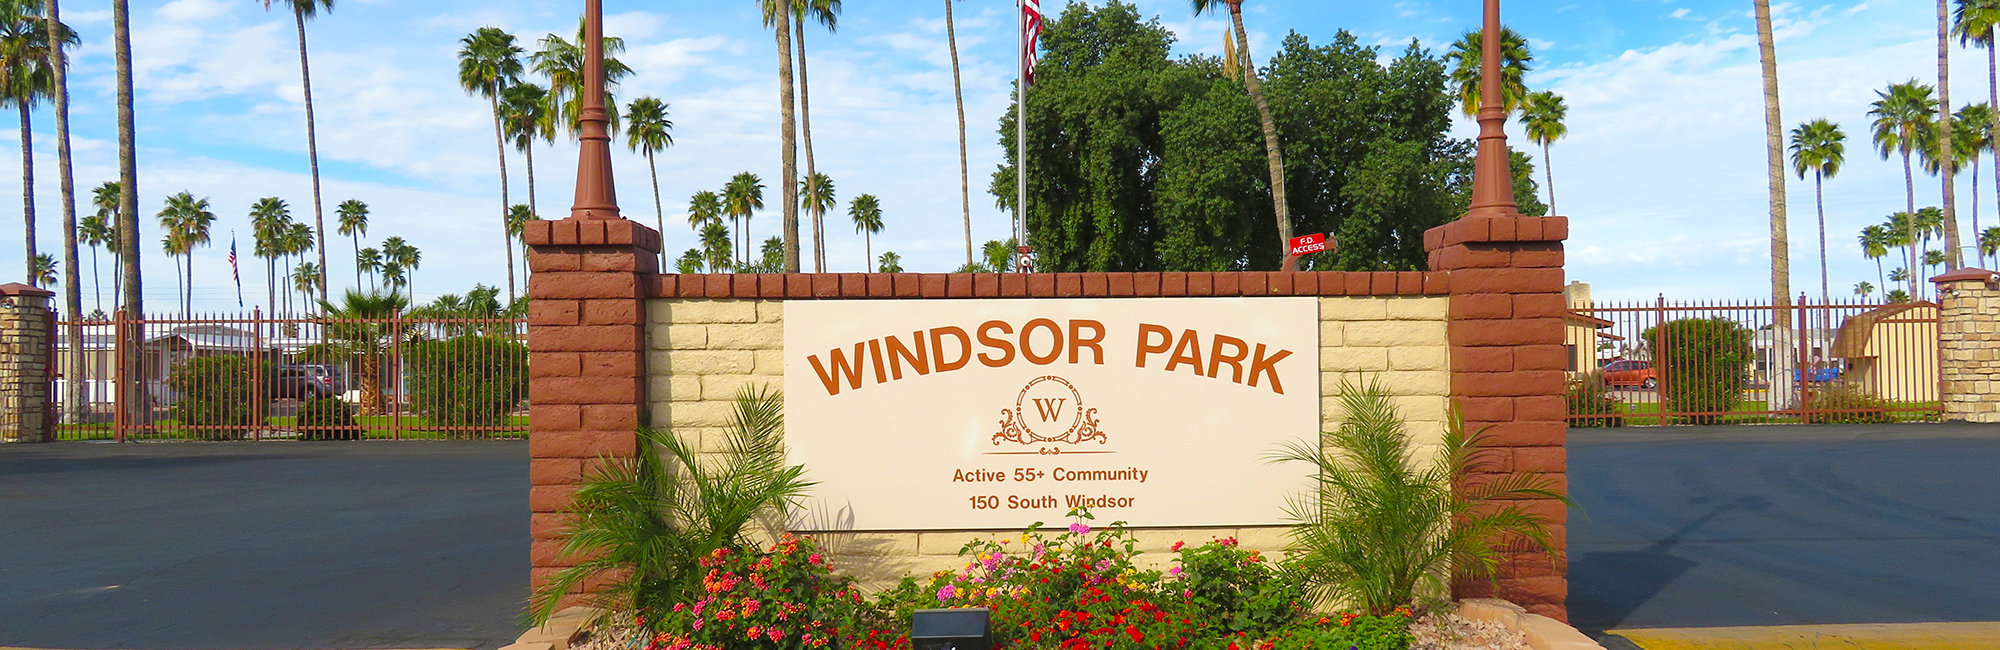 Windsor Park | Mobile Home Park Mesa Arizona